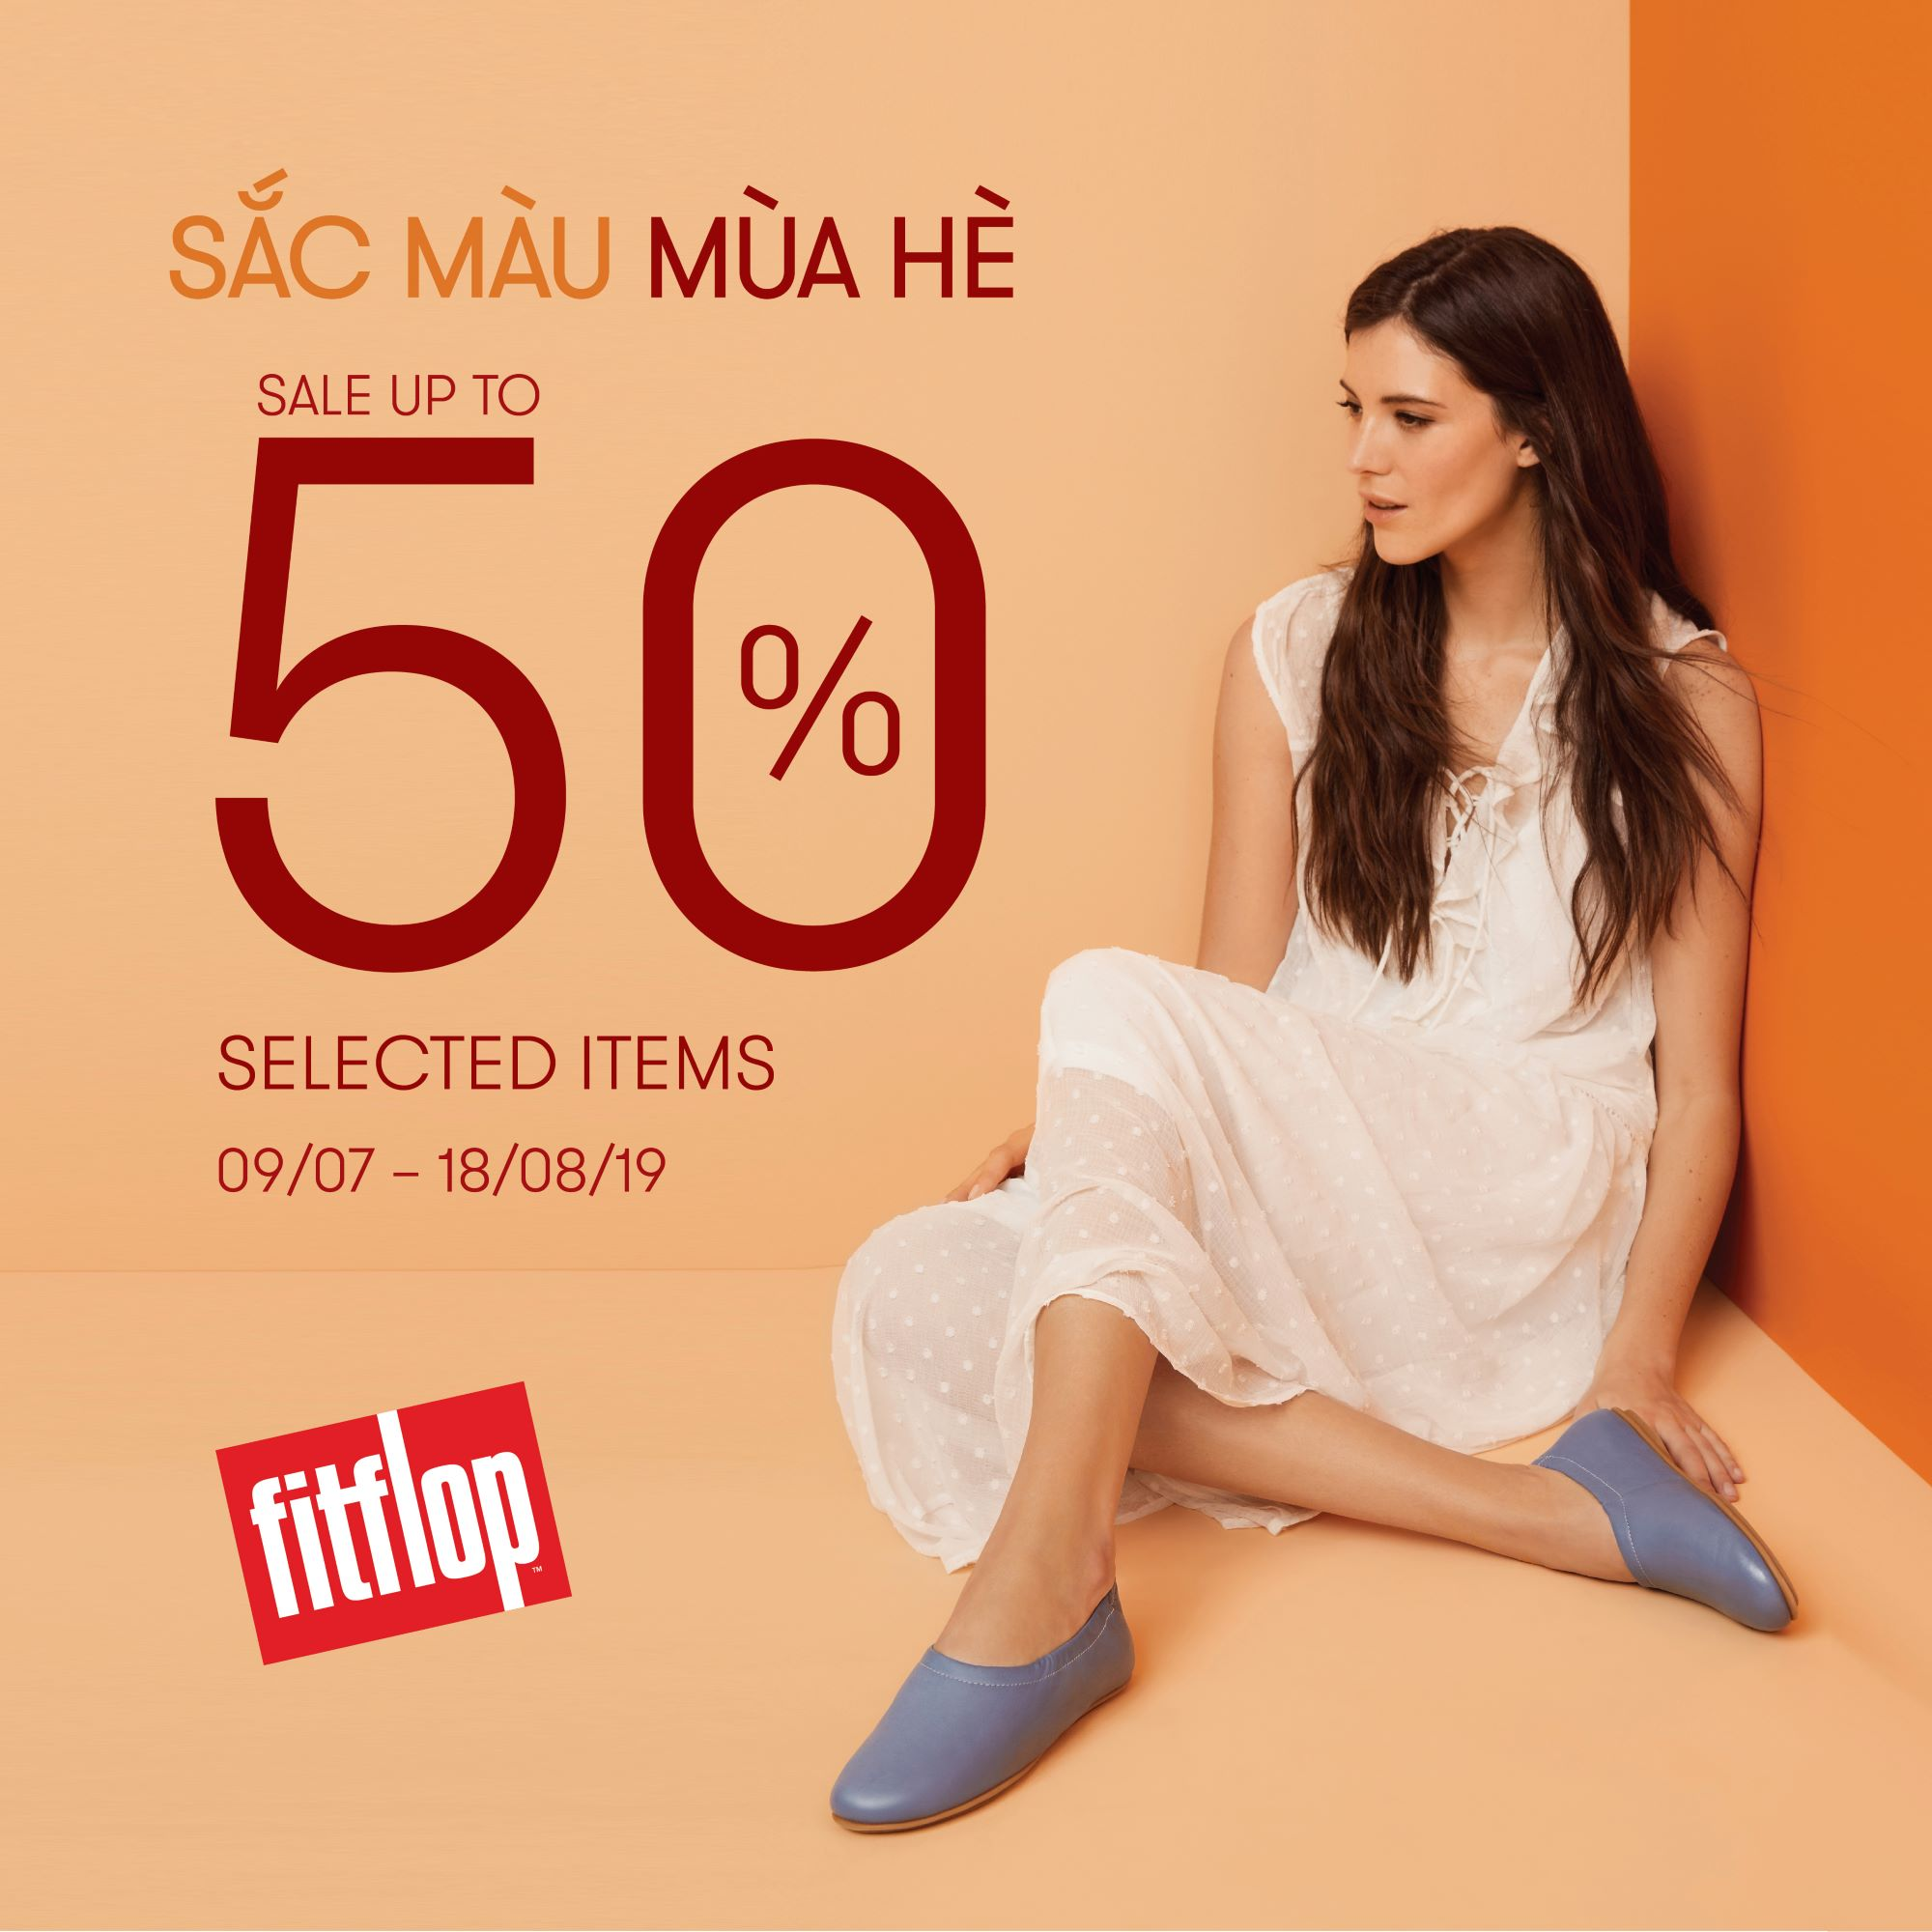 FITFLOP END OF SEASON SALE - DISCOUNT UP TO 50% AT ESTELLA PLACE